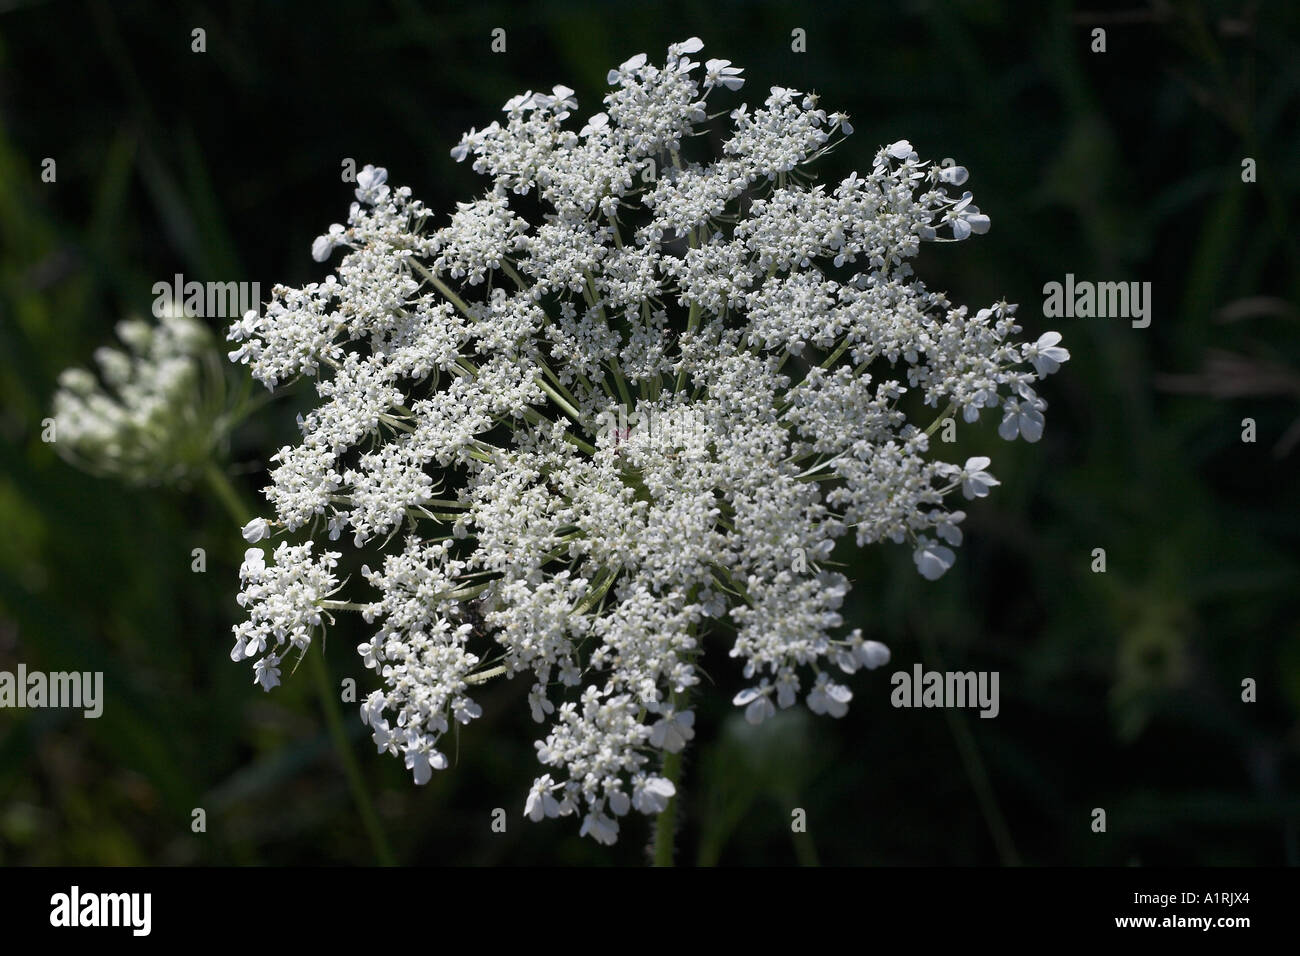 Queen Anne's Lace: The lacy white florets of a flower of Queen Anne s Lace or Wild Carrot or Daucus carota - Stock Image